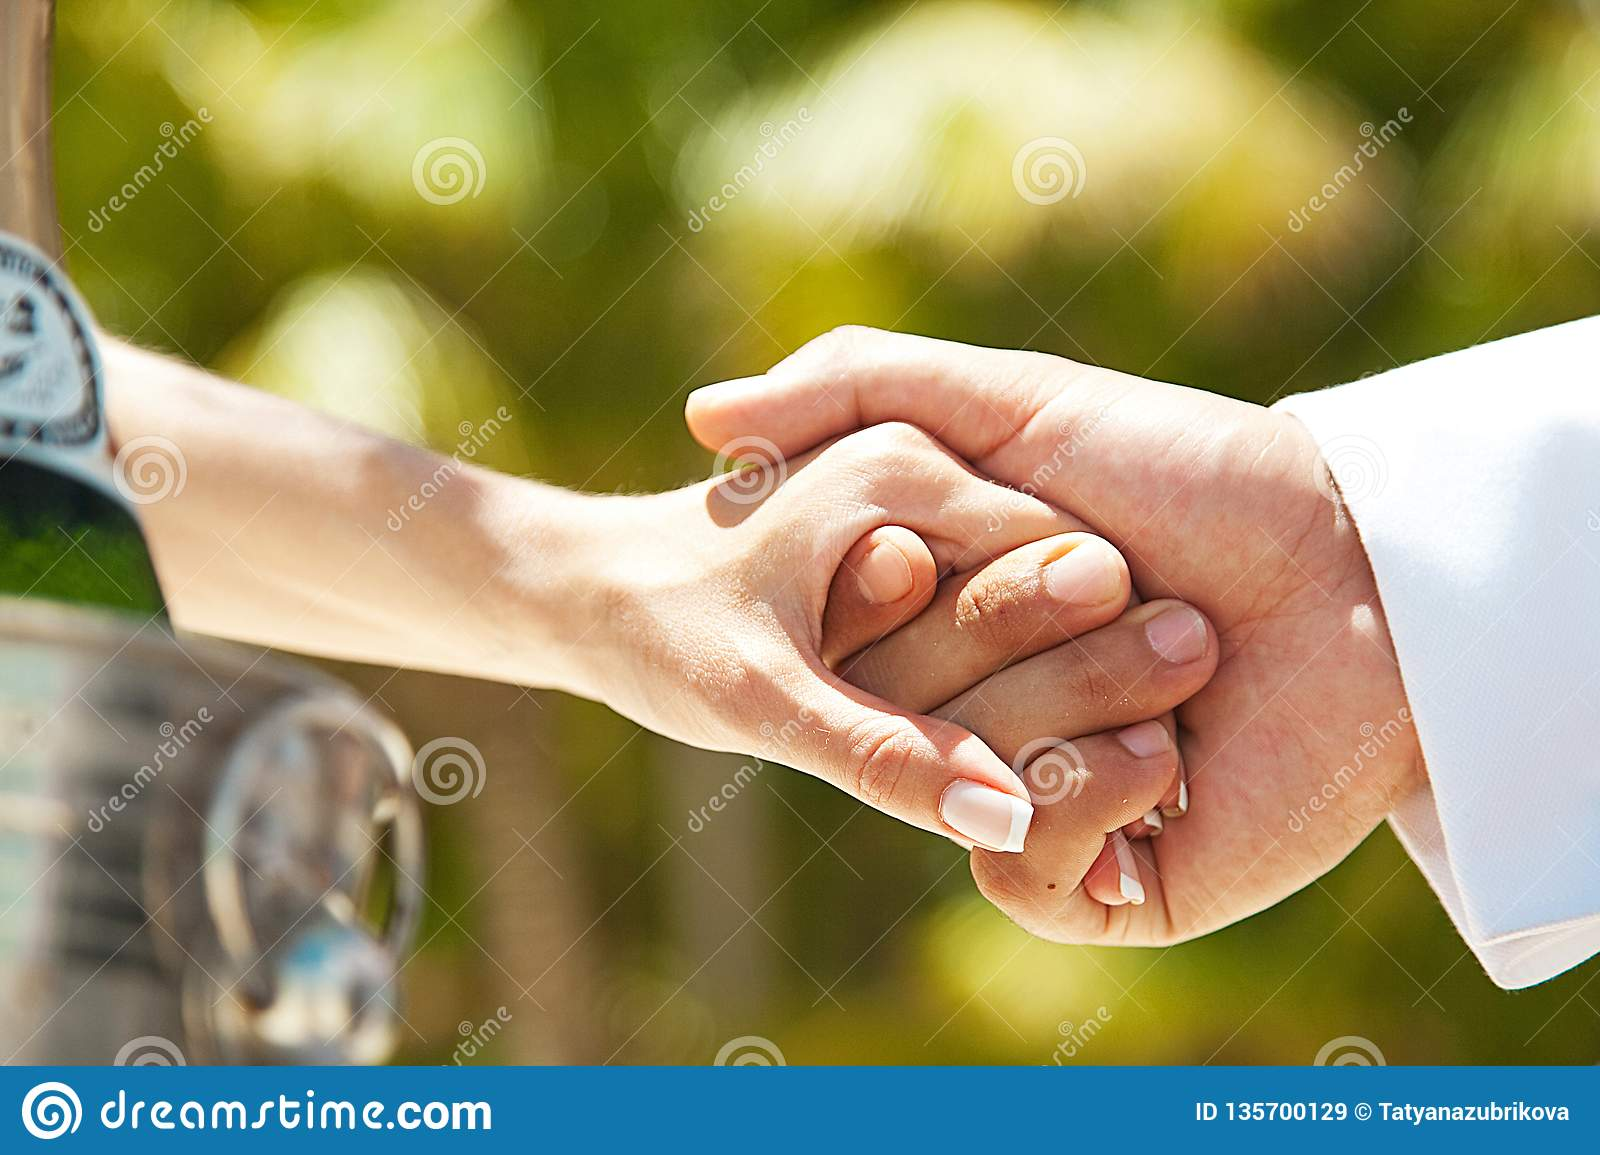 couple hold hands. Wedding and love.